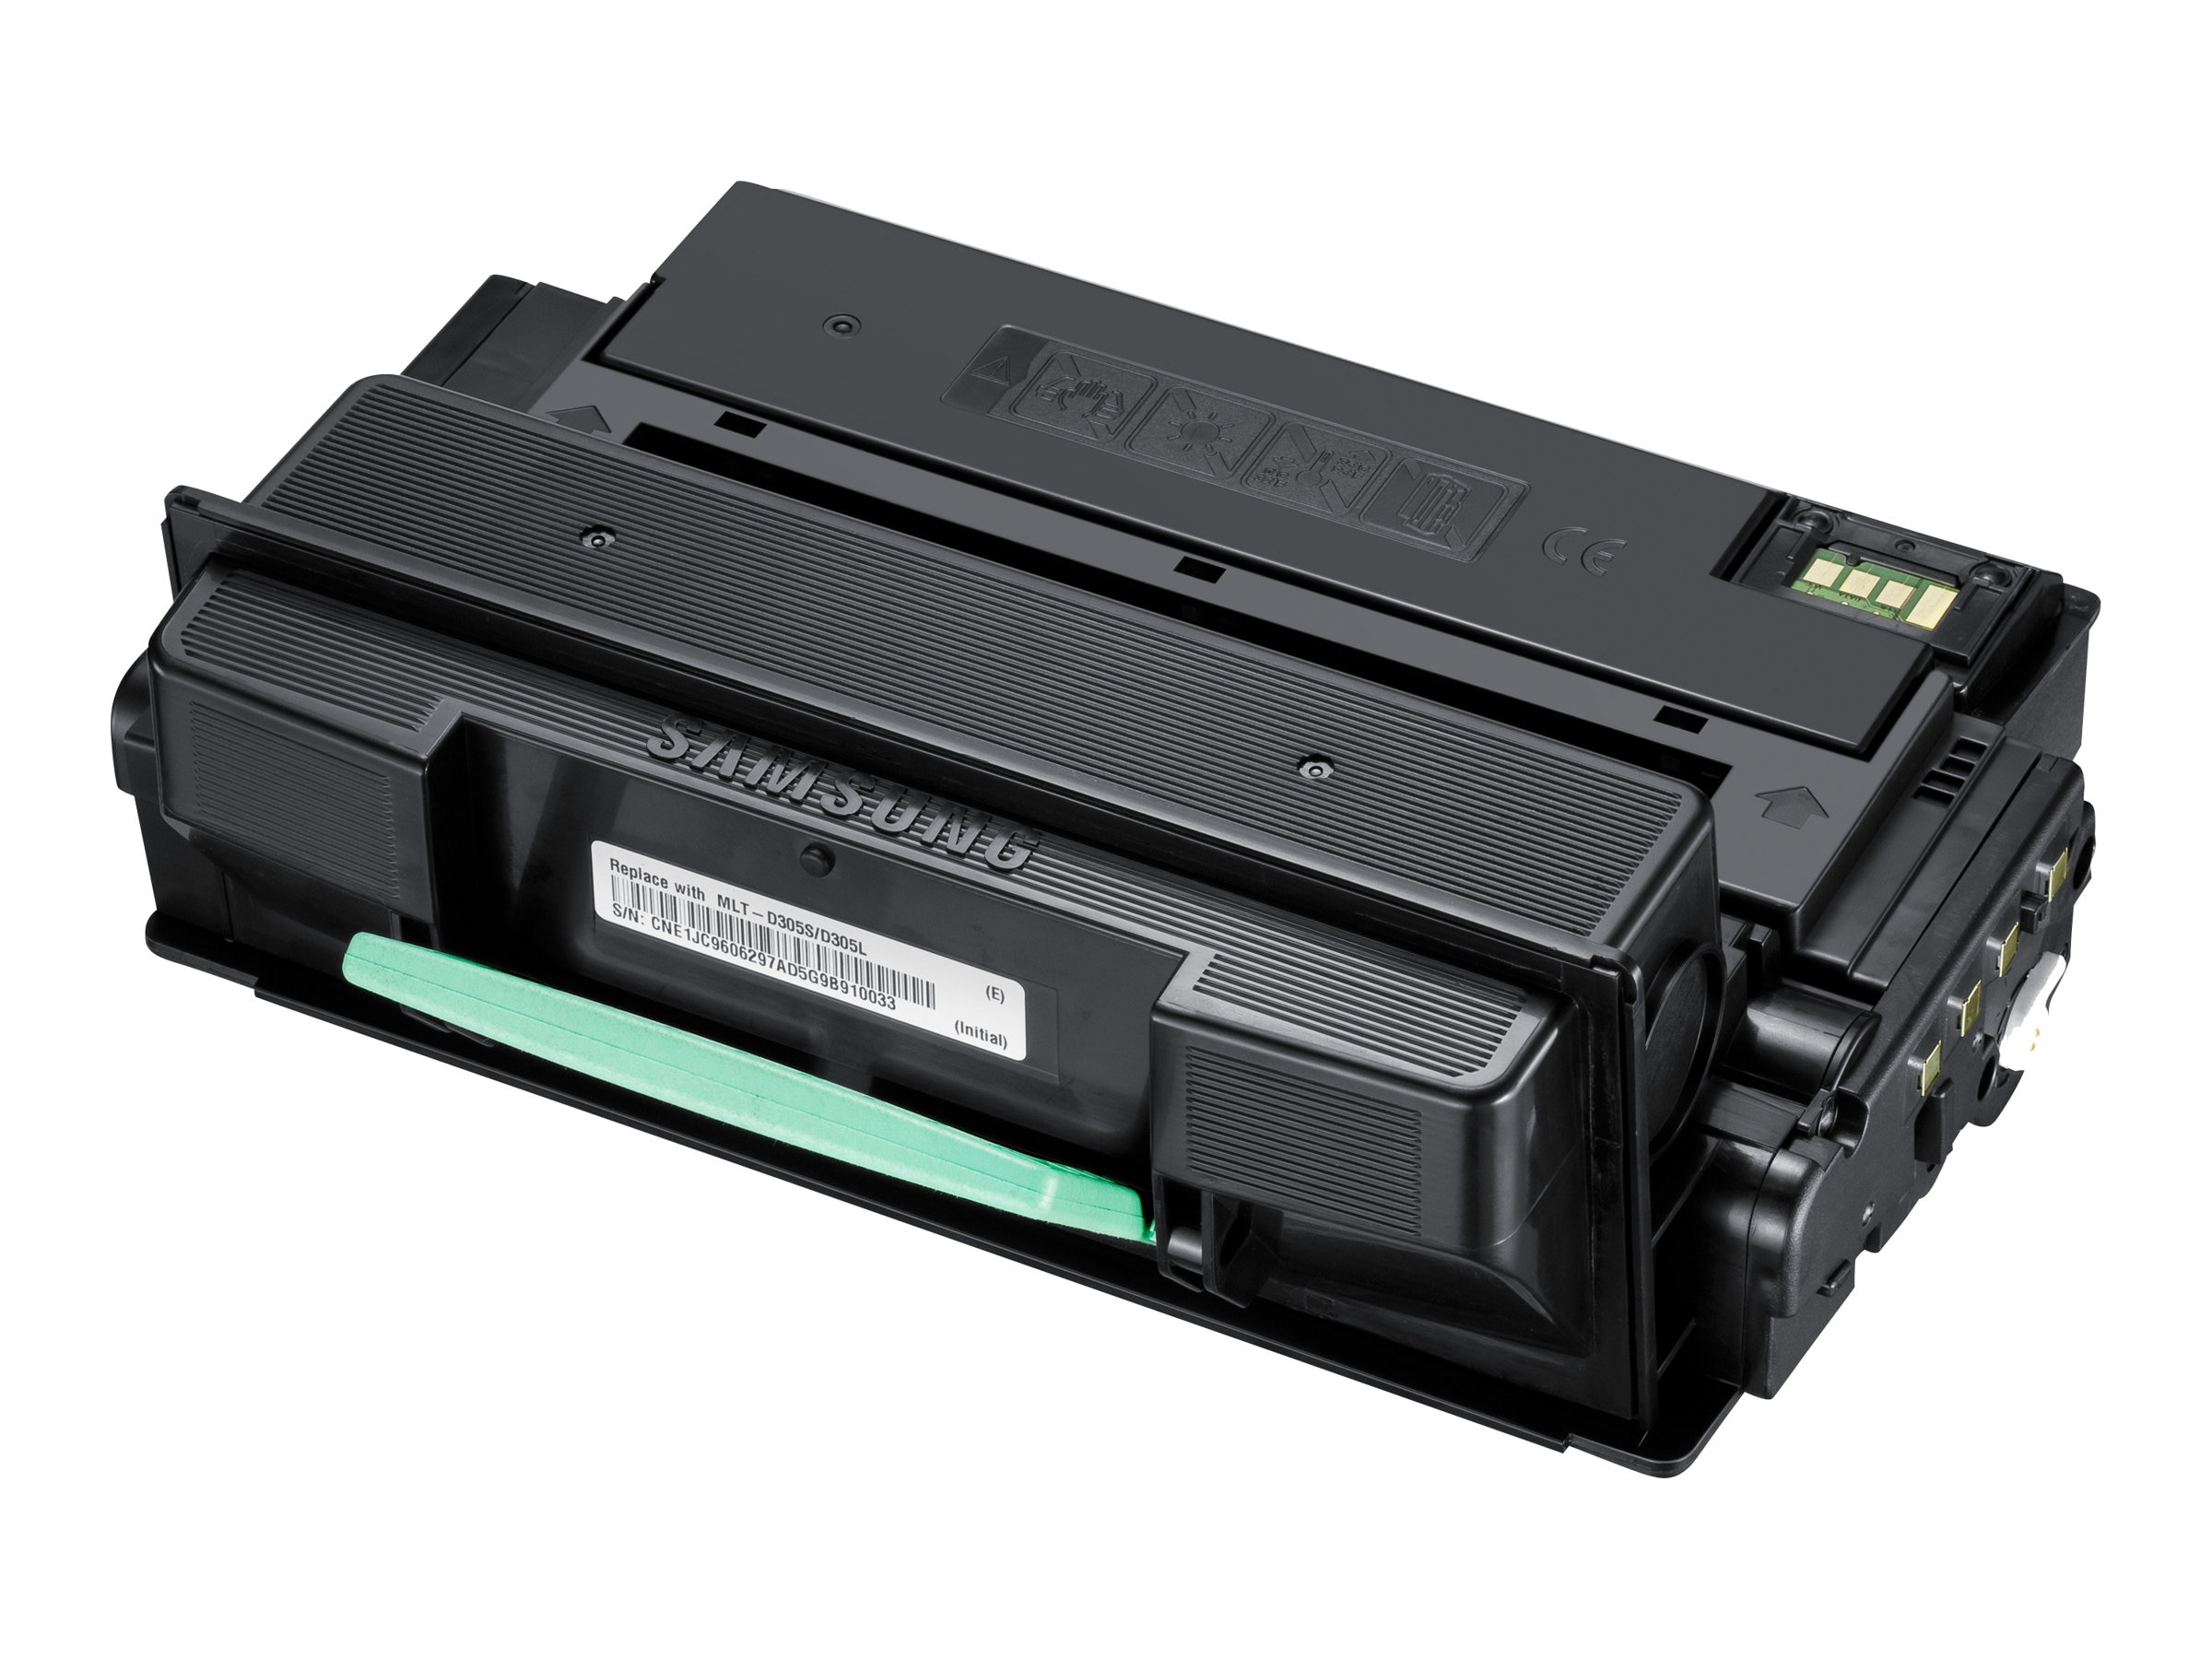 Samsung Black Toner Cartridge for ML-3750ND